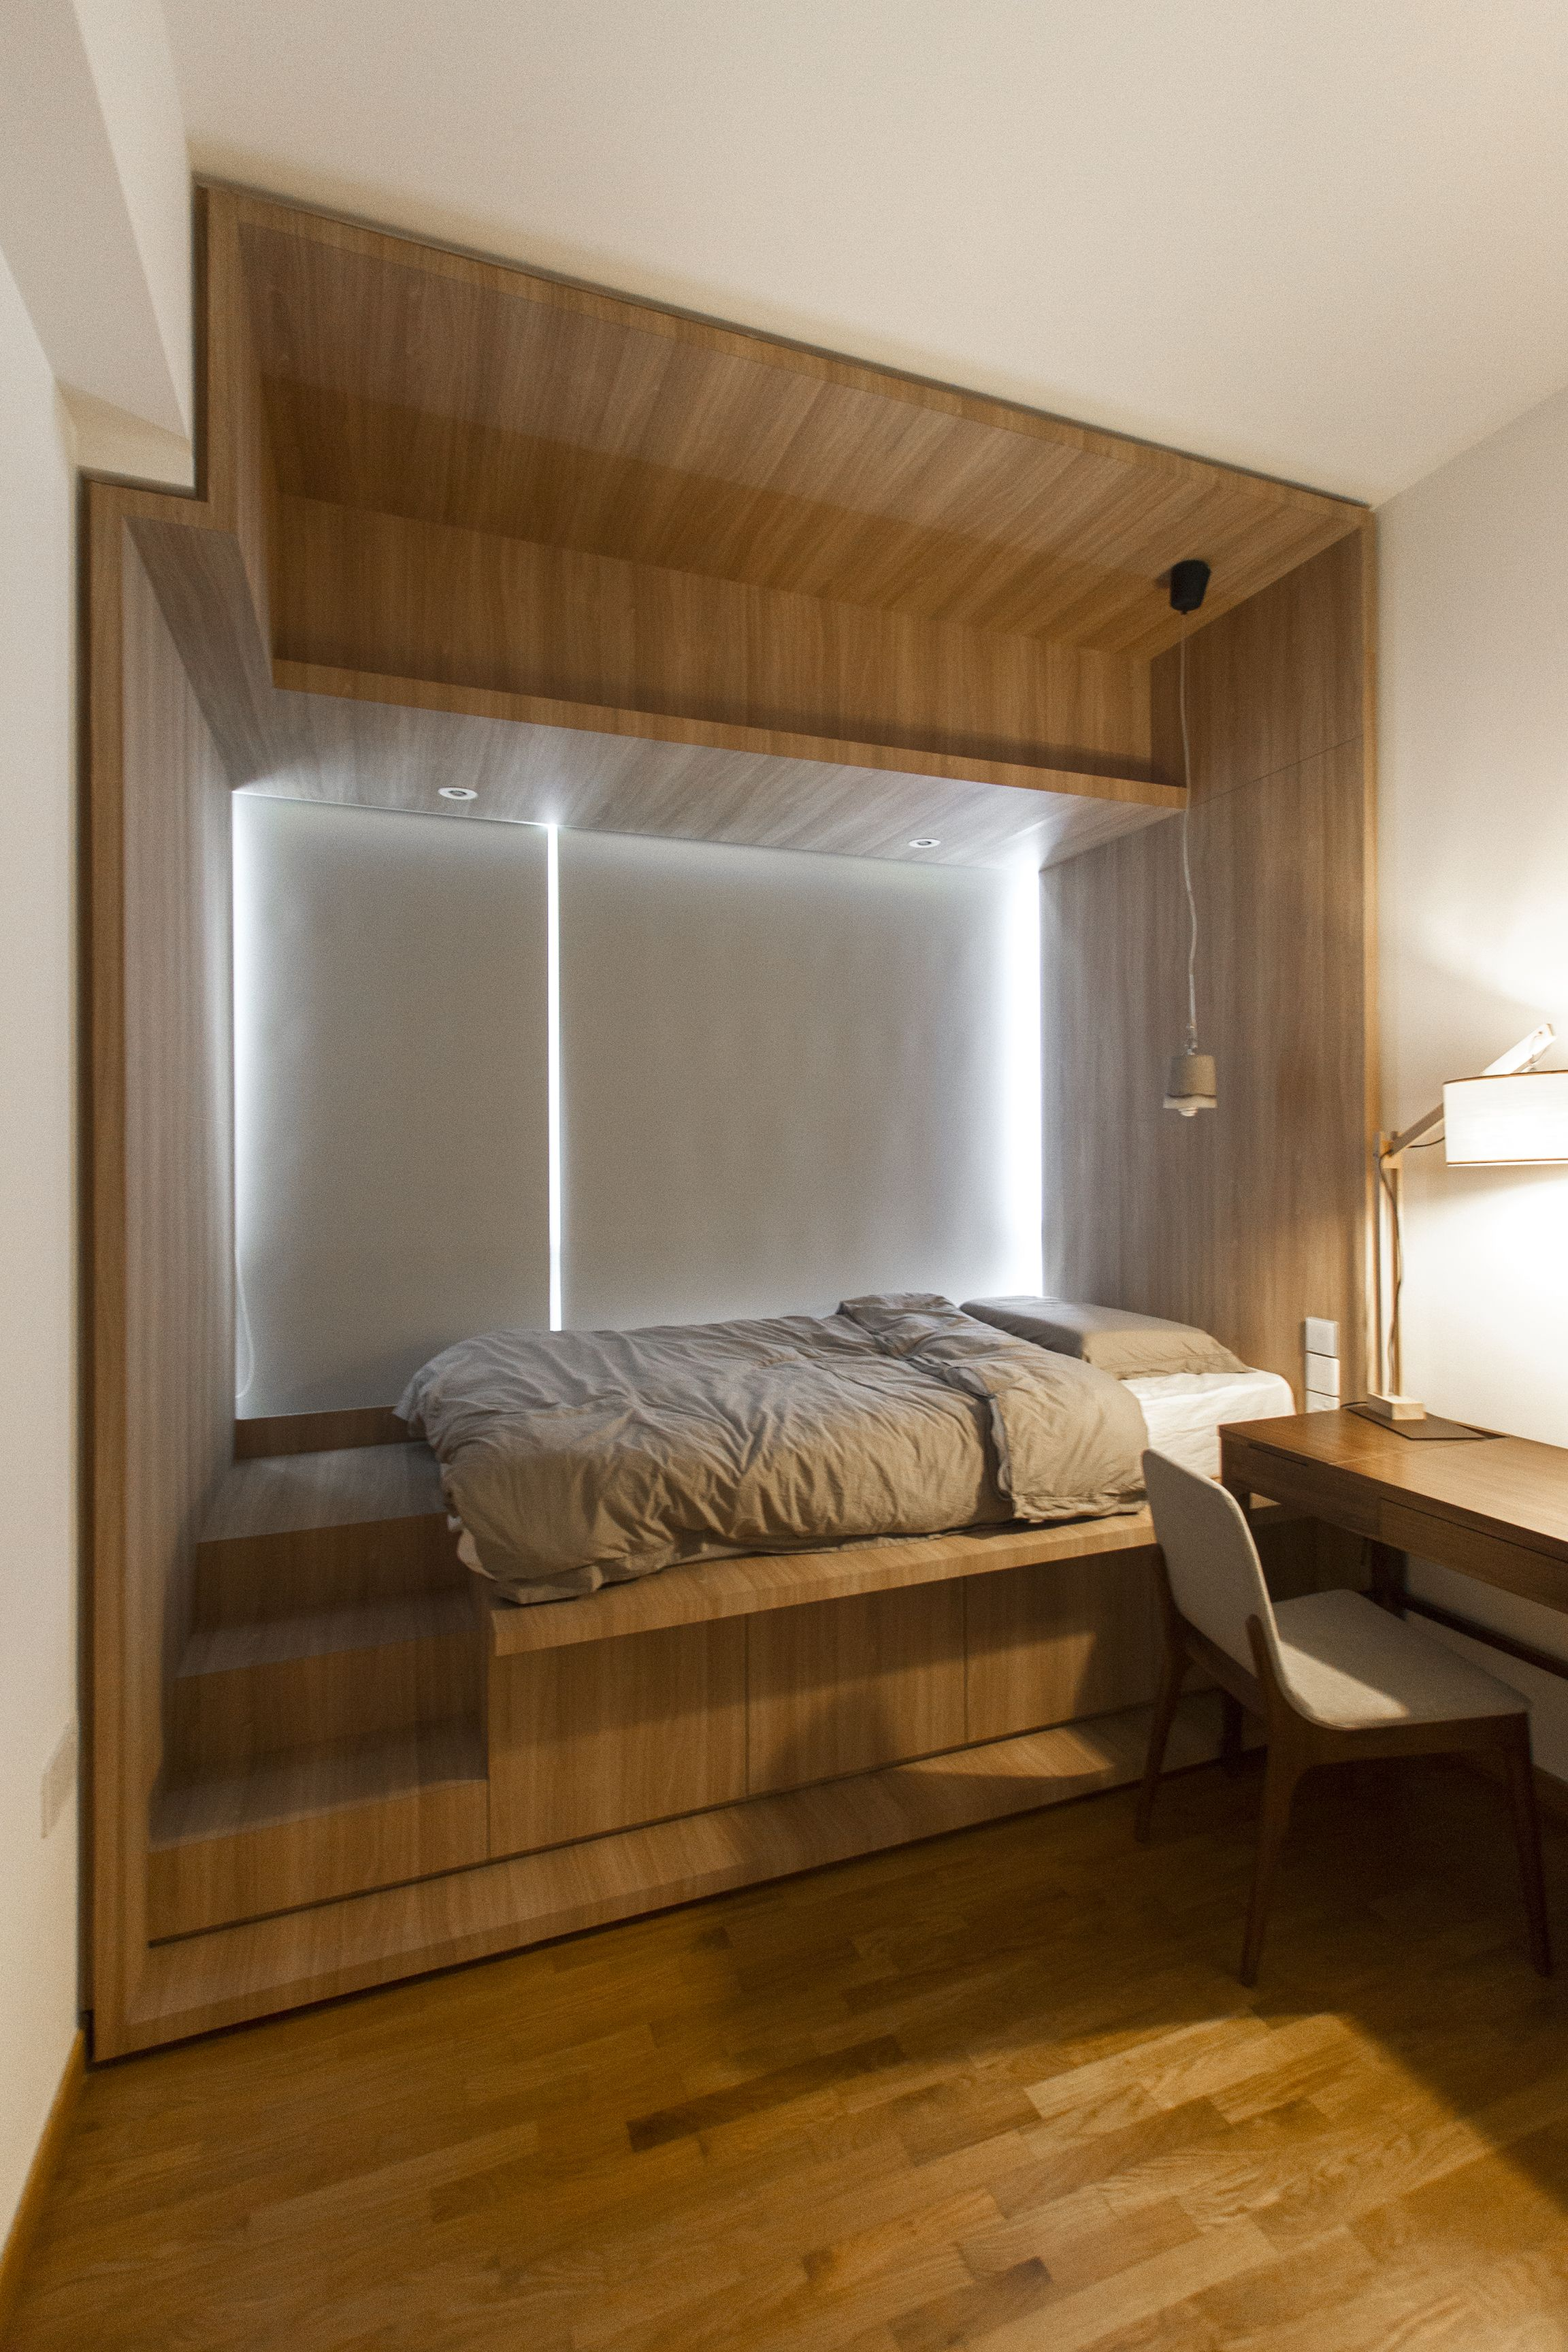 Bedroom ideas window behind bed  ao studiosthe minton apartment bed platform singapore  bedrooms